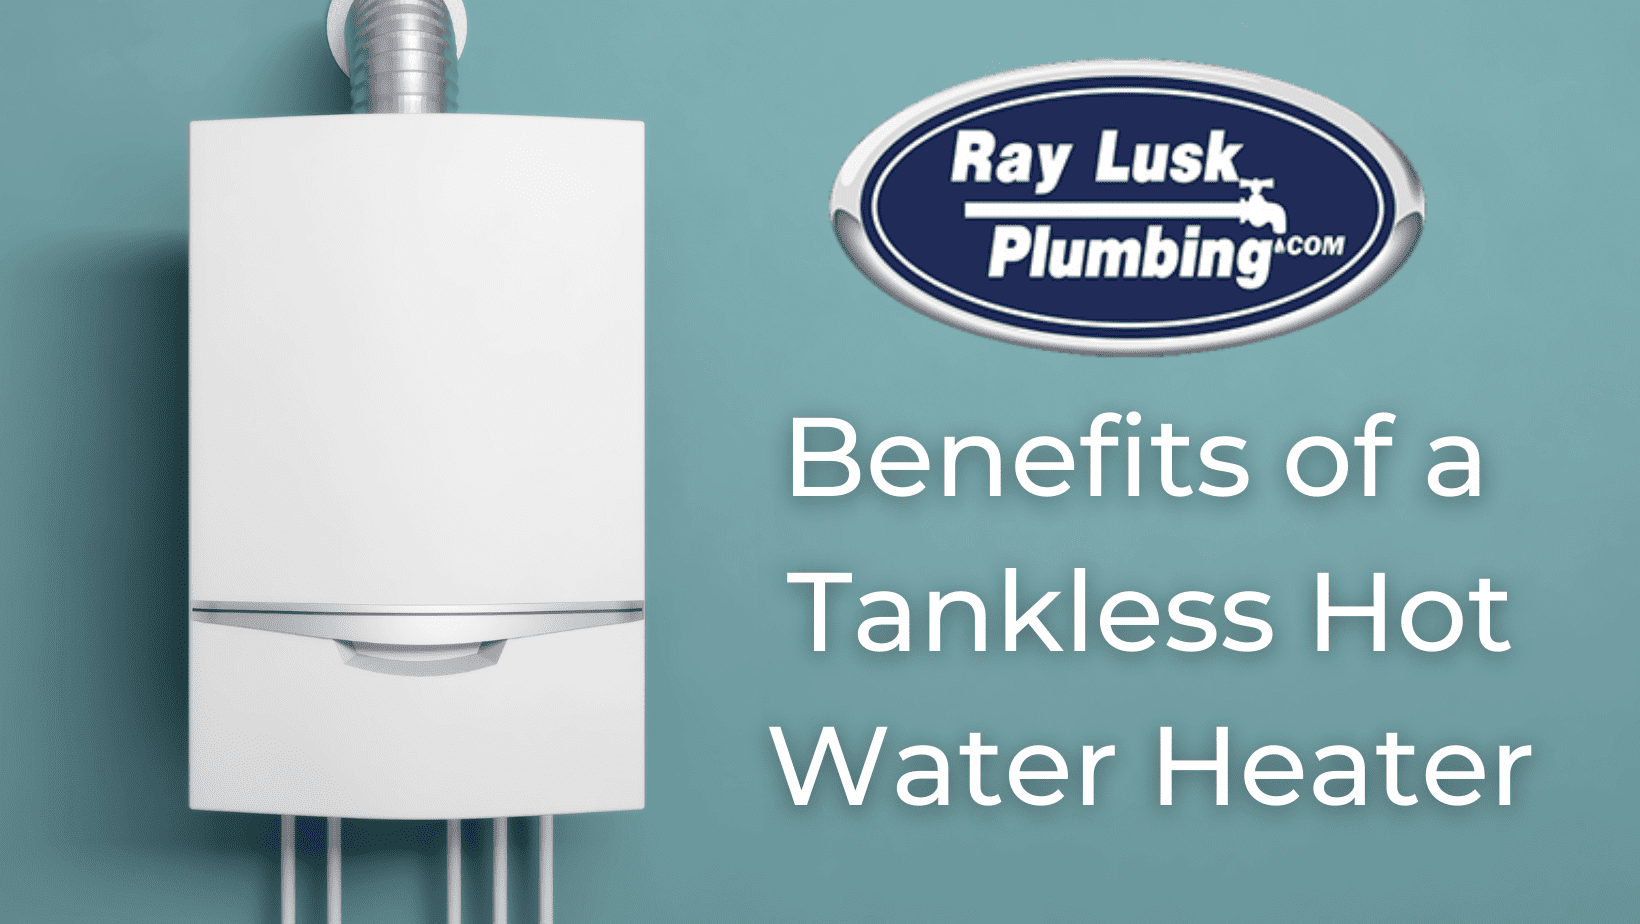 Image text reads: Benefits of a Tankless water heater